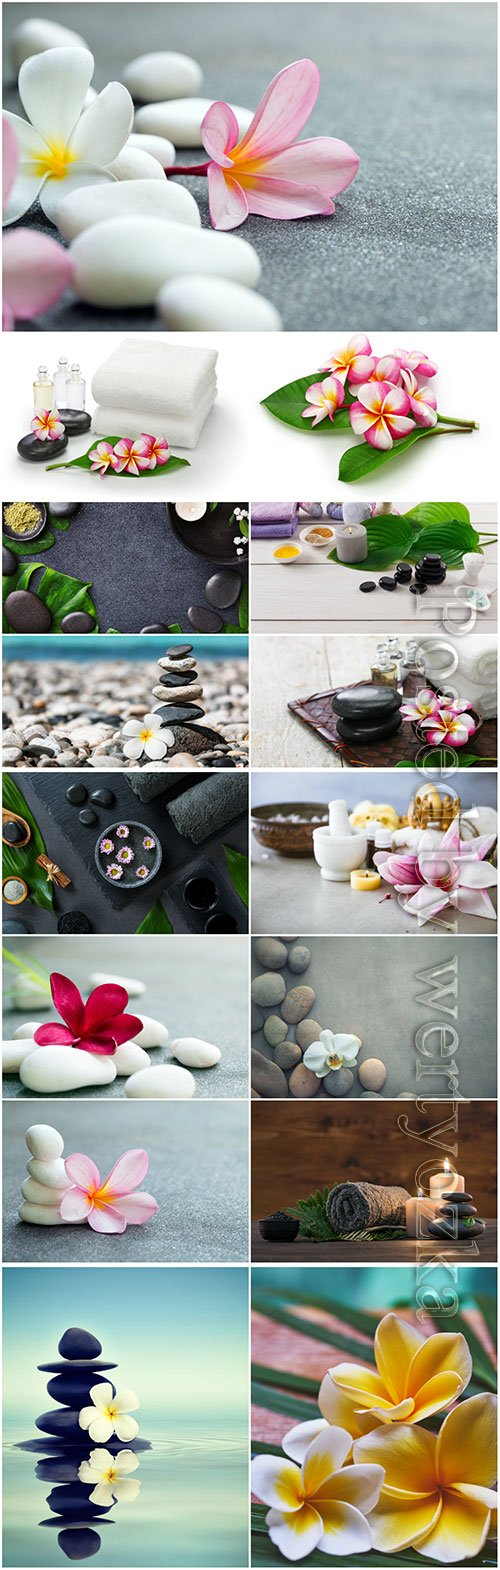 Spa backgrounds, compositions beautiful stock photo